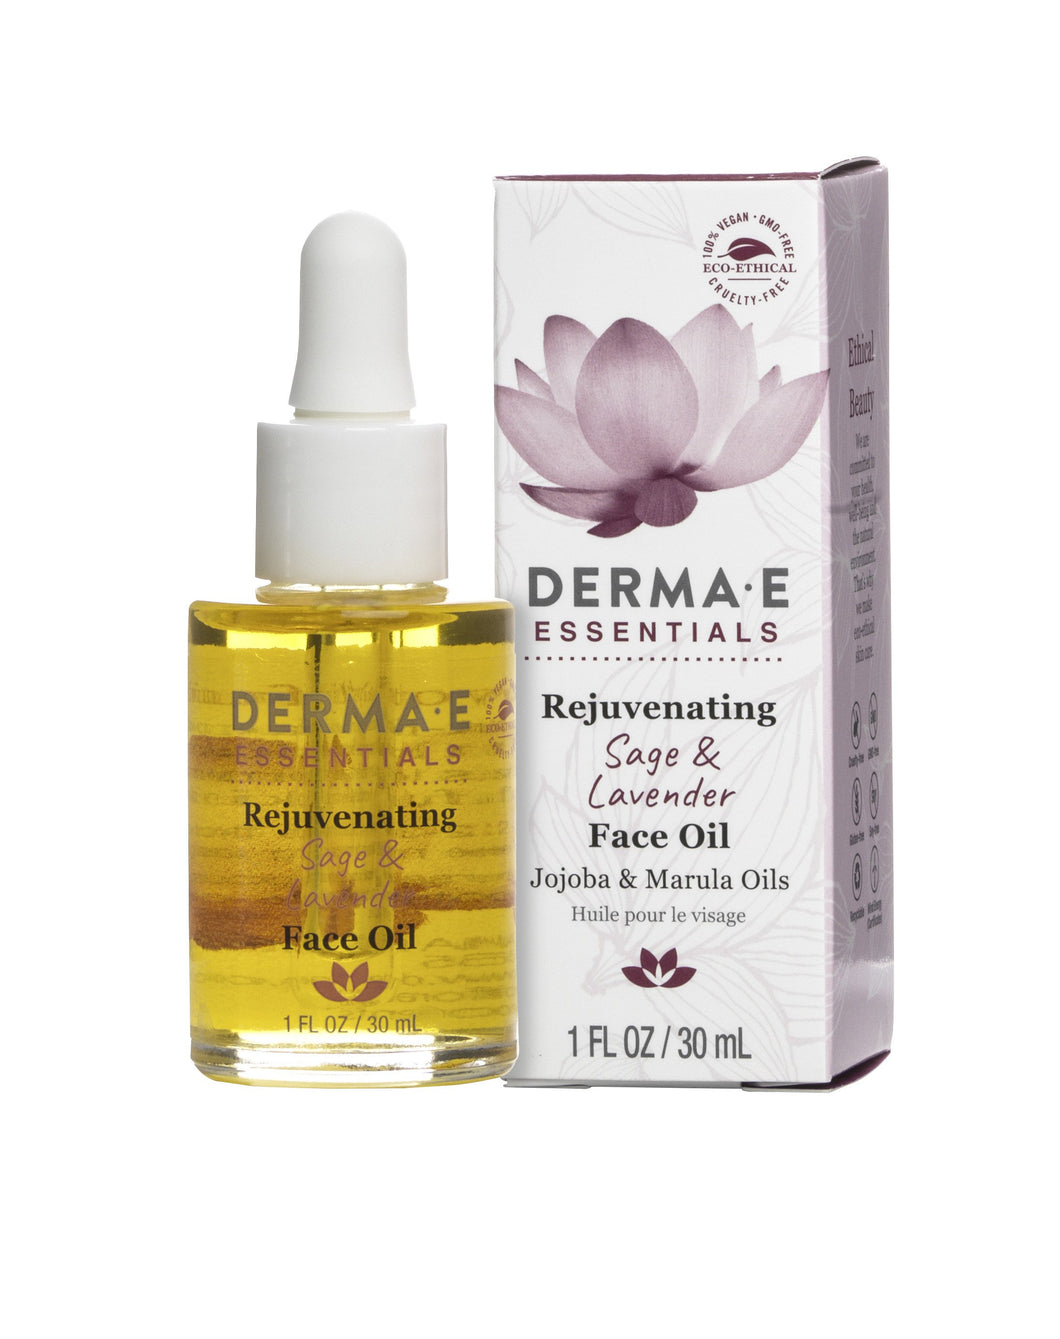 Rejuvenating Sage & Lavender Face Oil